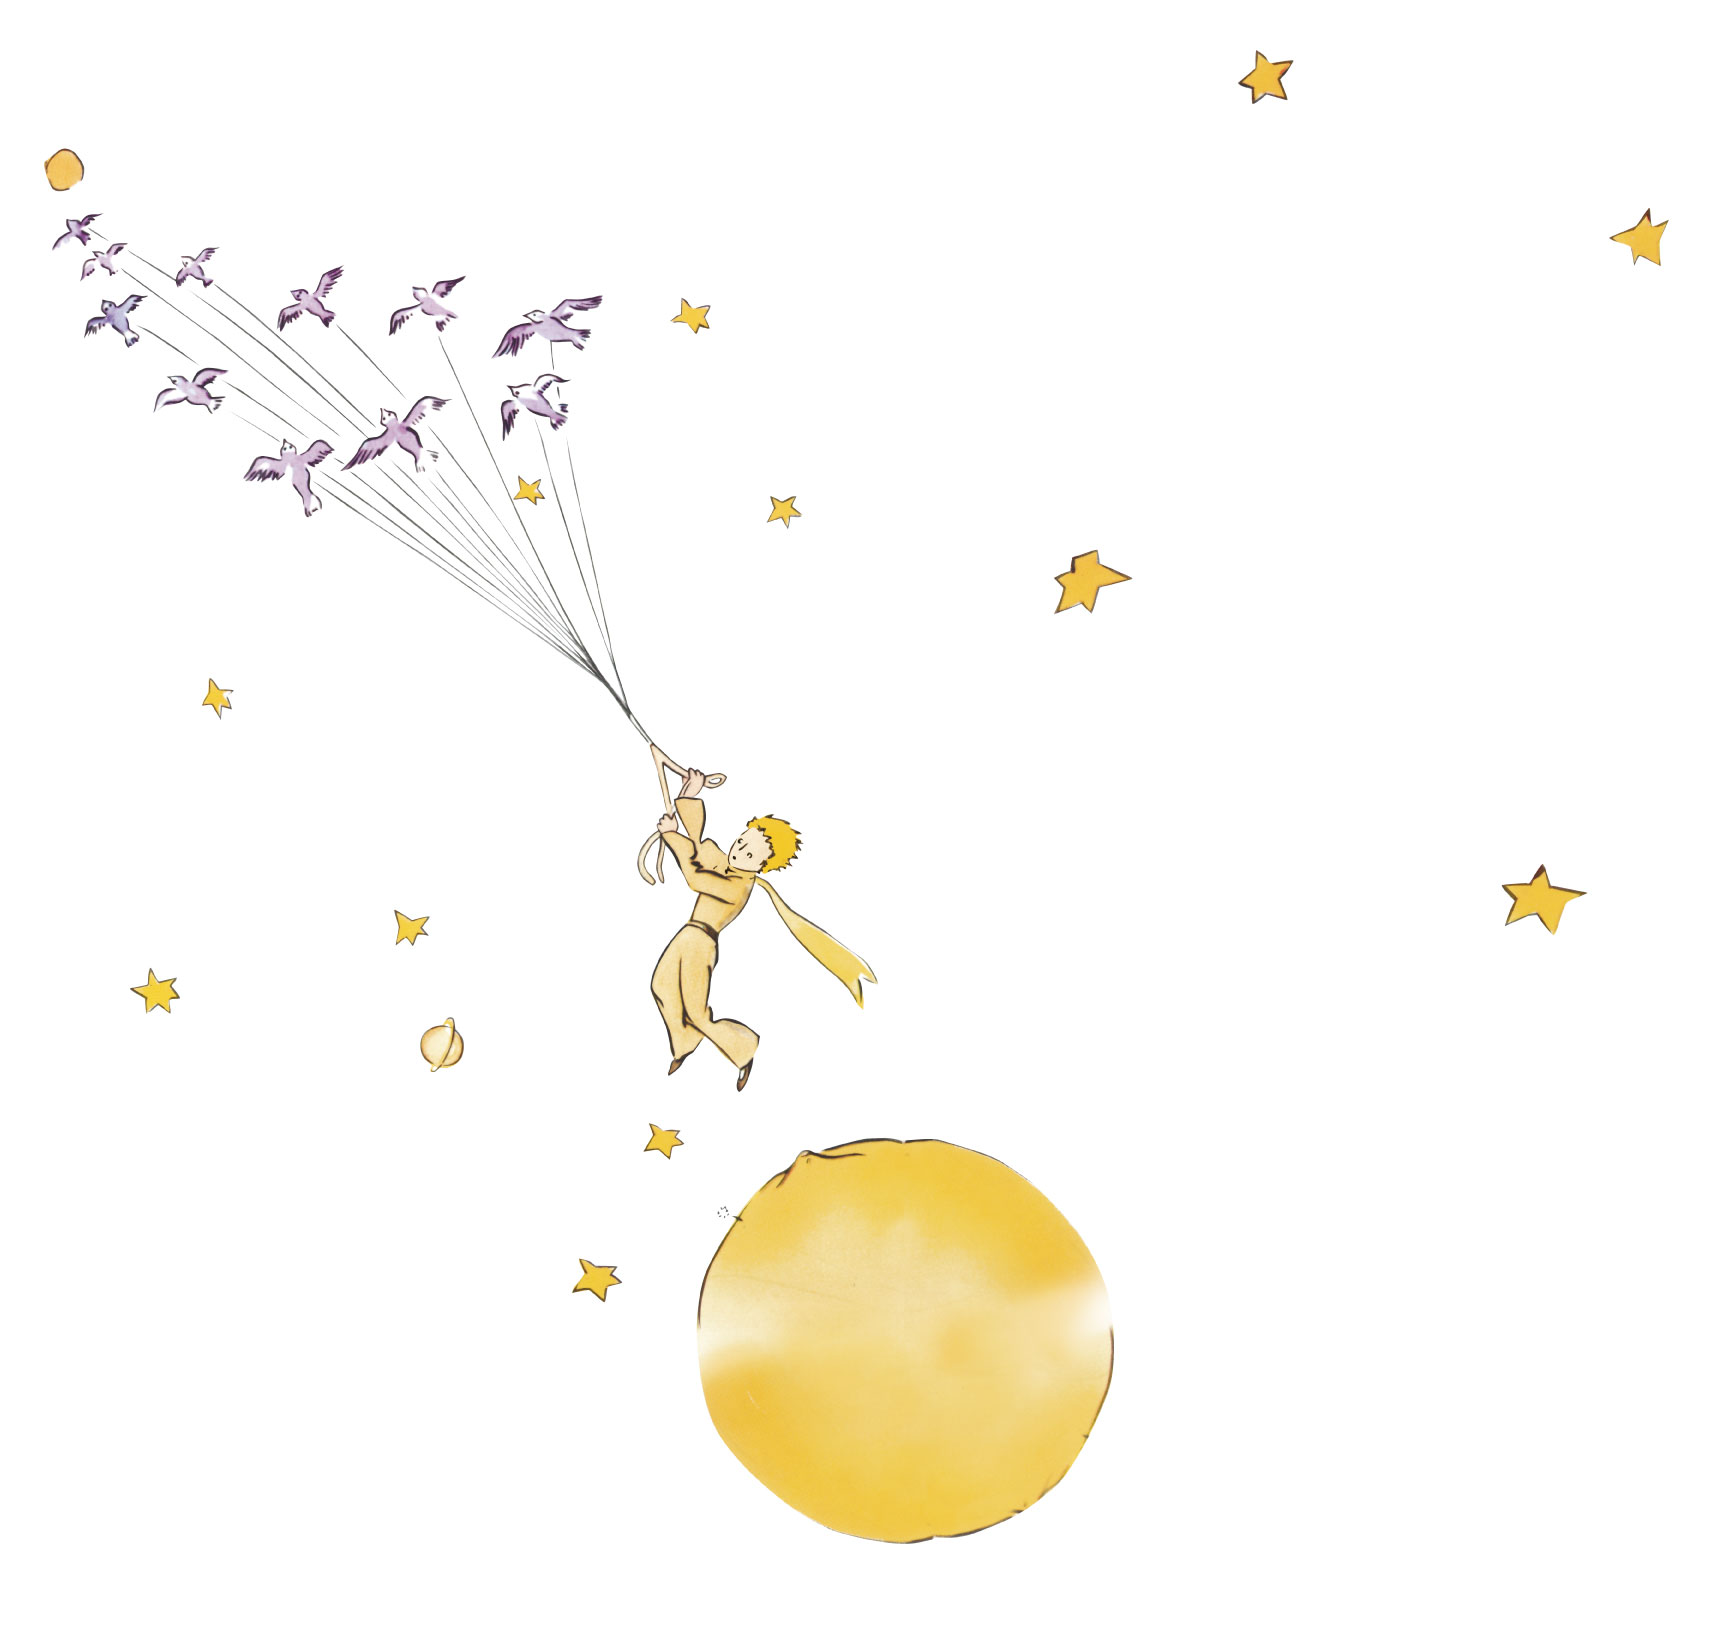 A drawing of Le Petit Prince tethered to a flock of birds, flying amongst the moon and stars